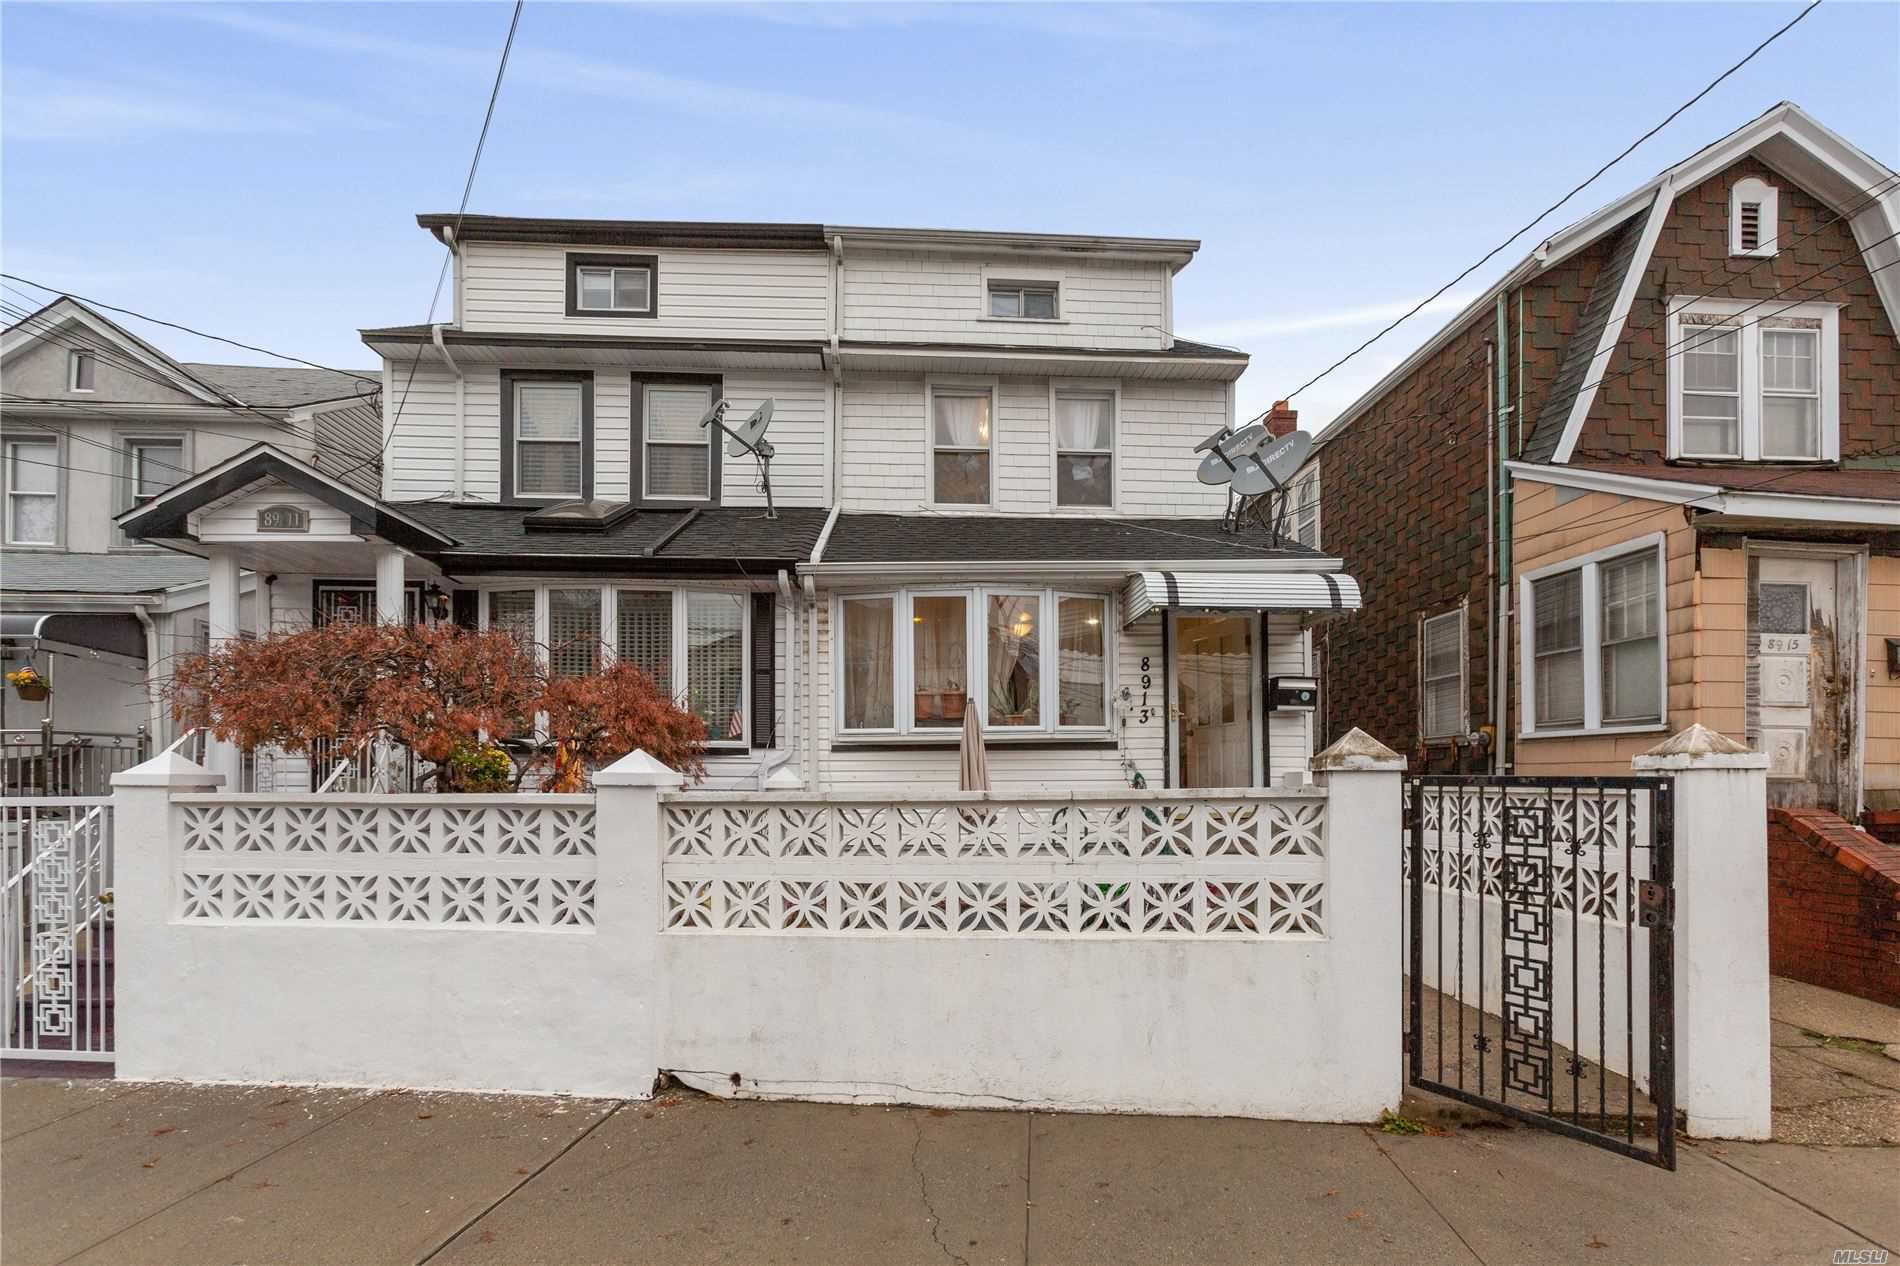 89-13 107th Avenue, Ozone Park, NY 11417 - MLS#: 3184889